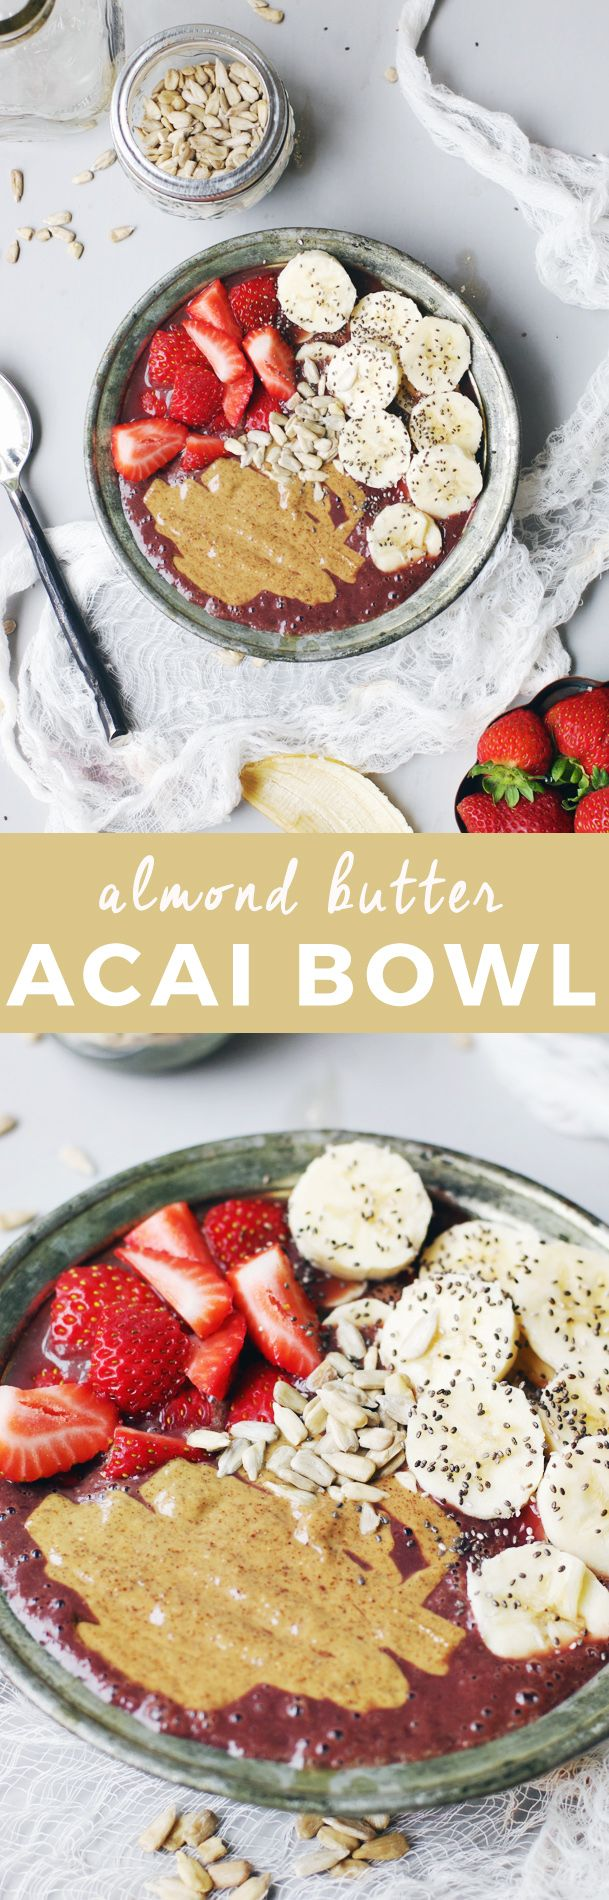 Almond Butter Acai Bowl | acai bowl recipe ideas | homemade acai bowls | how to make an acai bowl | healthy breakfast ideas | breakfast recipe ideas | fresh fruit recipe ideas | homemade healthy breakfast recipes | recipes using almond butter | almond butter recipe ideas || The Butter Half via @thebutterhalf